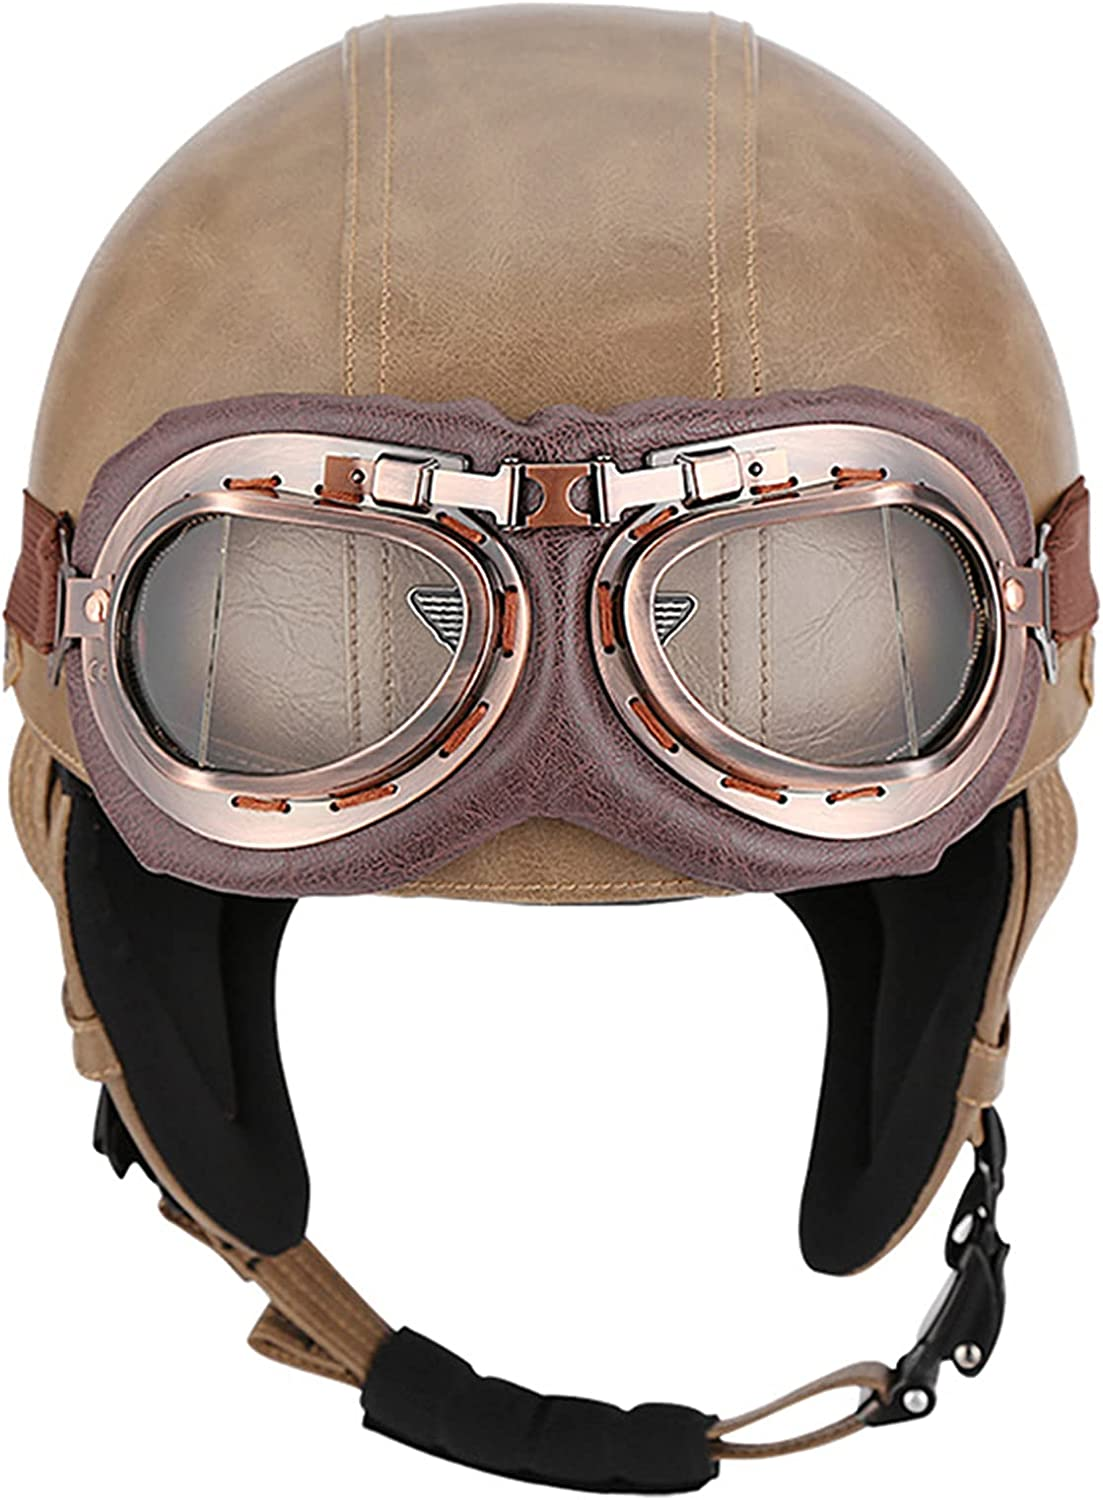 Motorcycle Half Shell Jacksonville Mall Helmet Vintage Open-Face Adults Motorbike free shipping